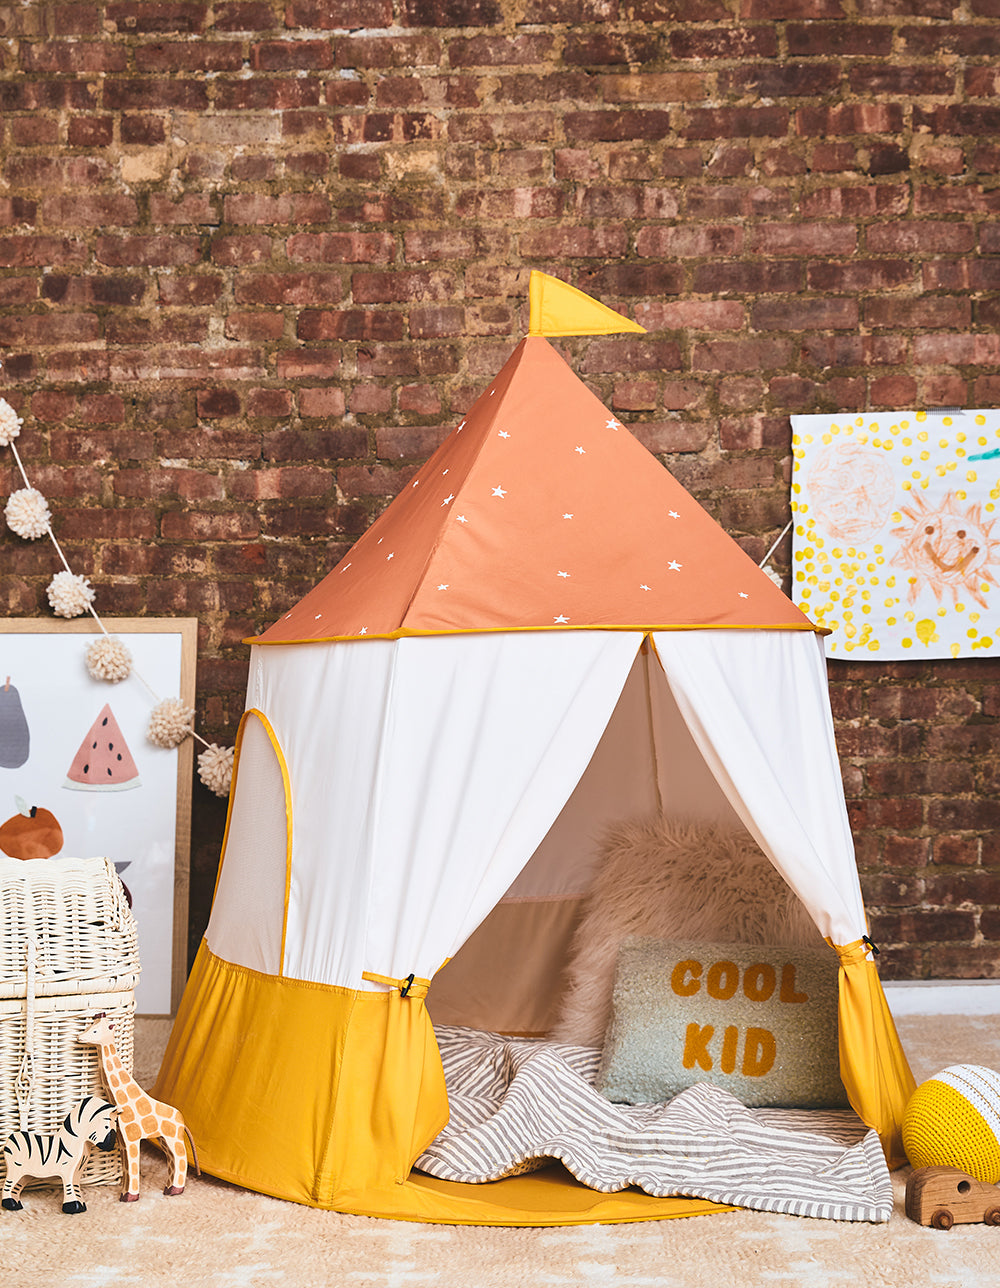 The Retro Play Tent